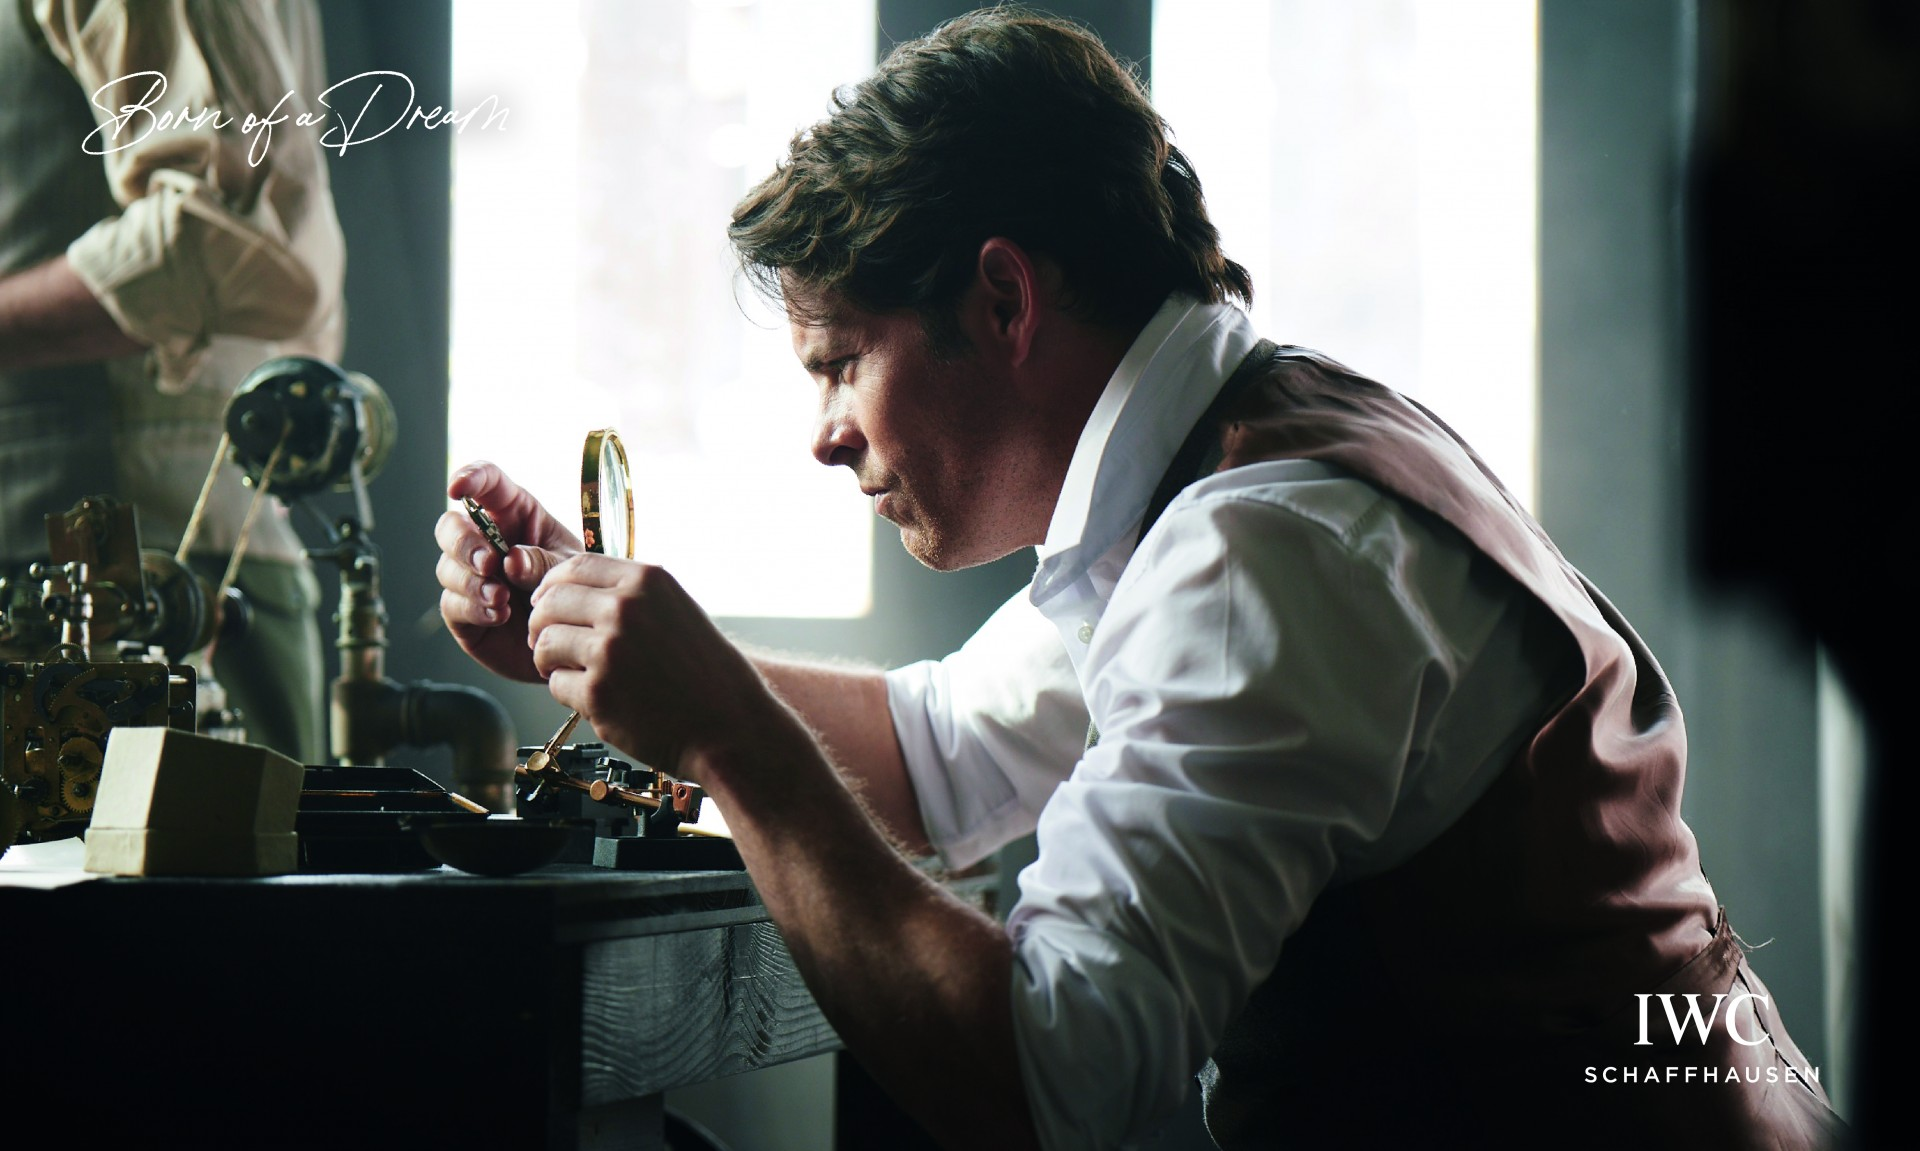 IWC_Born of a Dream_James Marsden_2